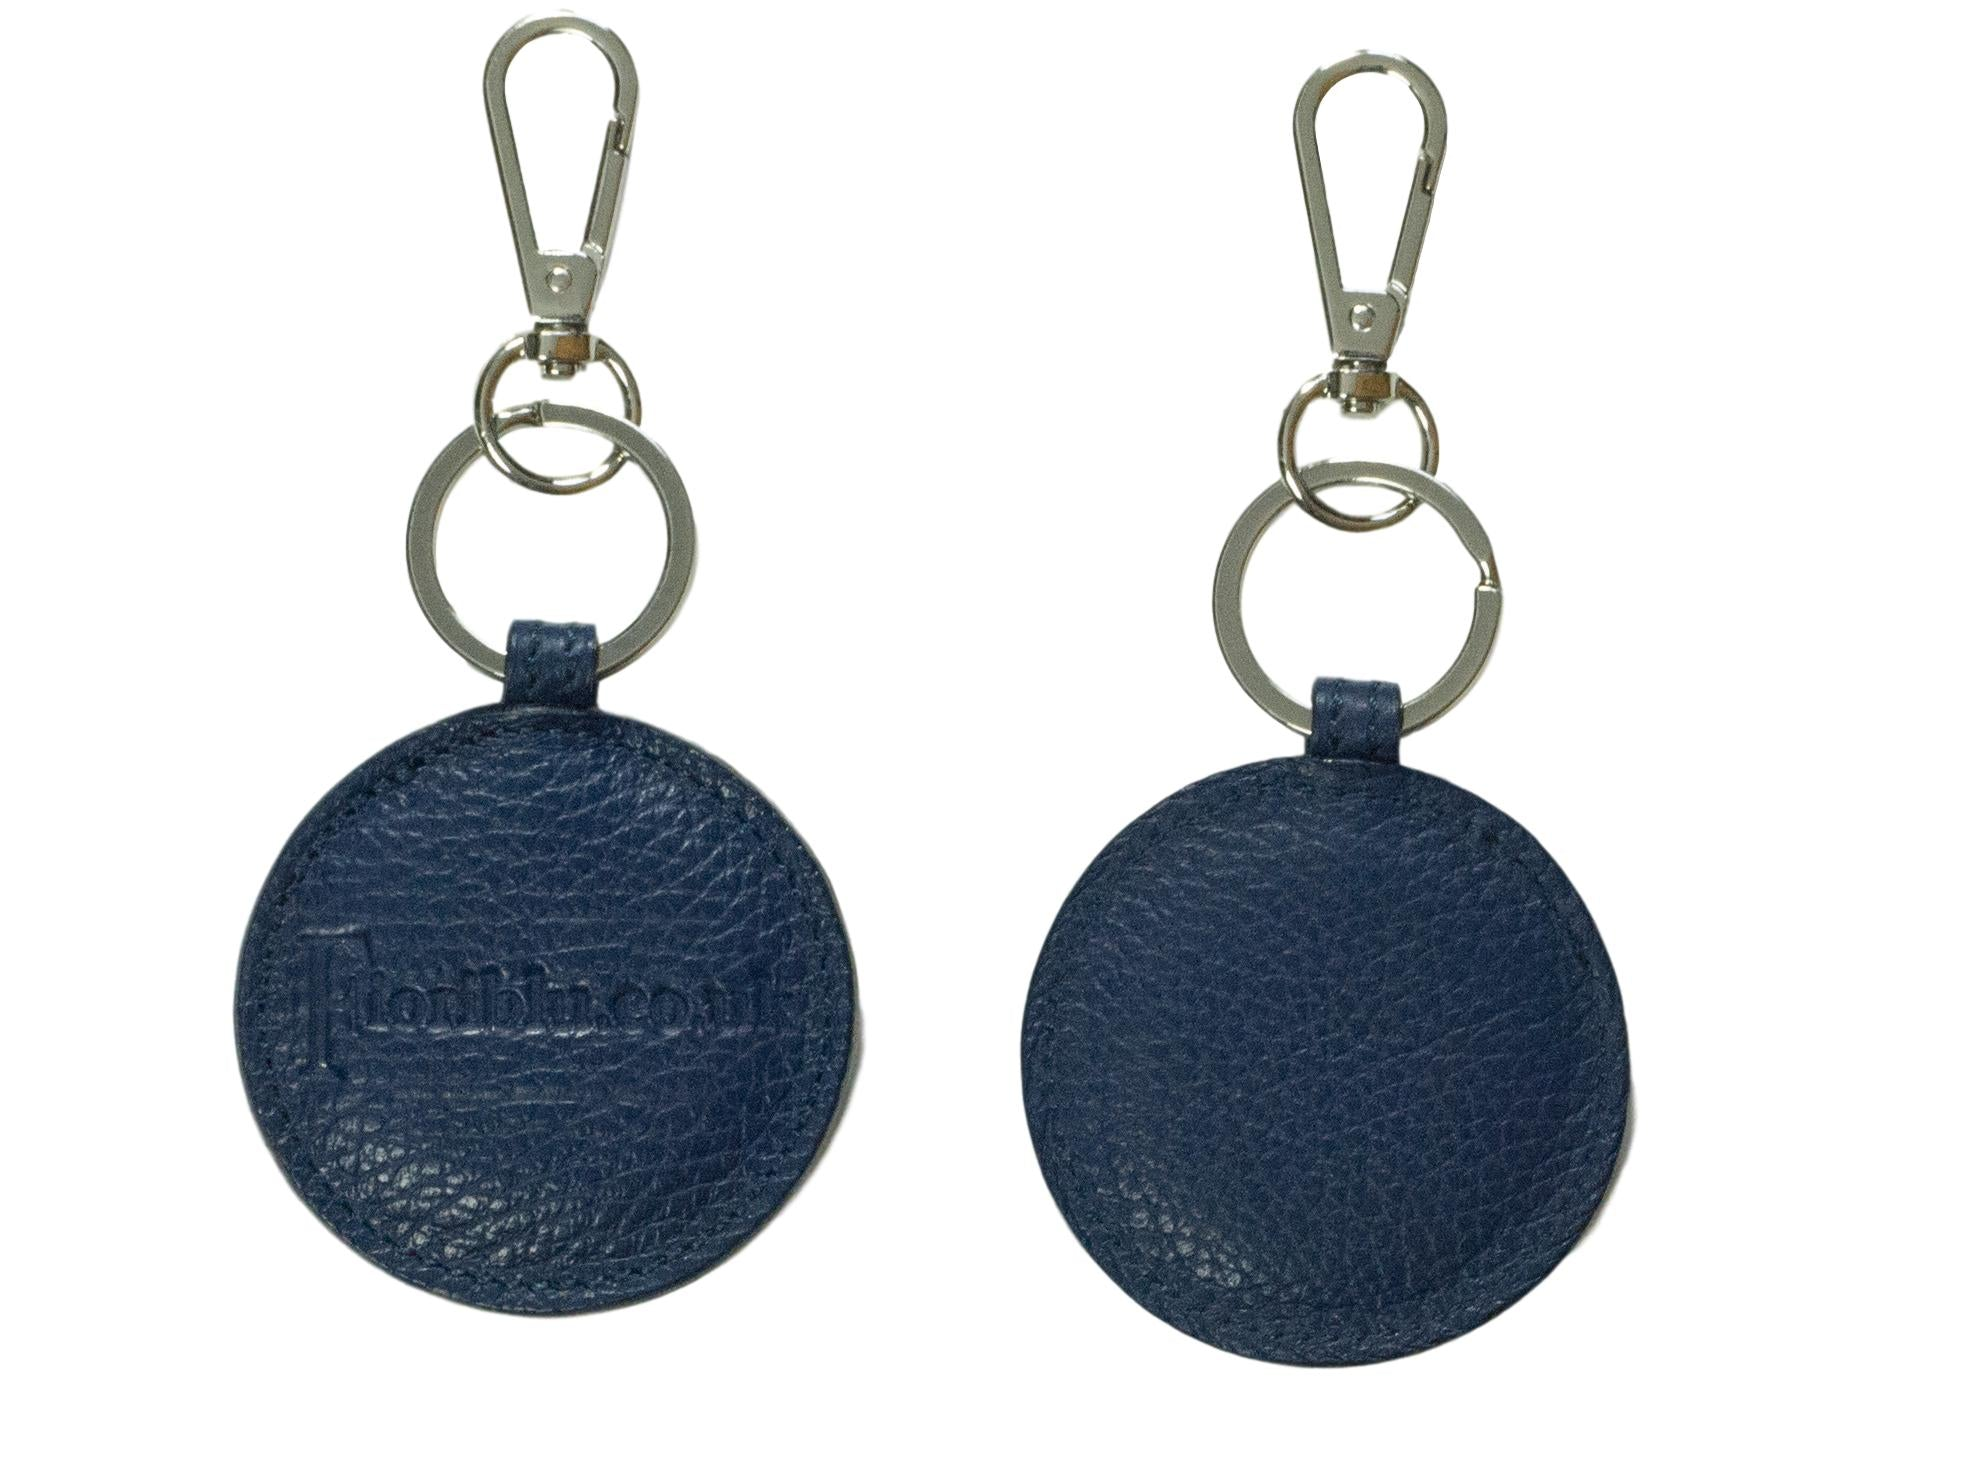 round key fob key ring blue